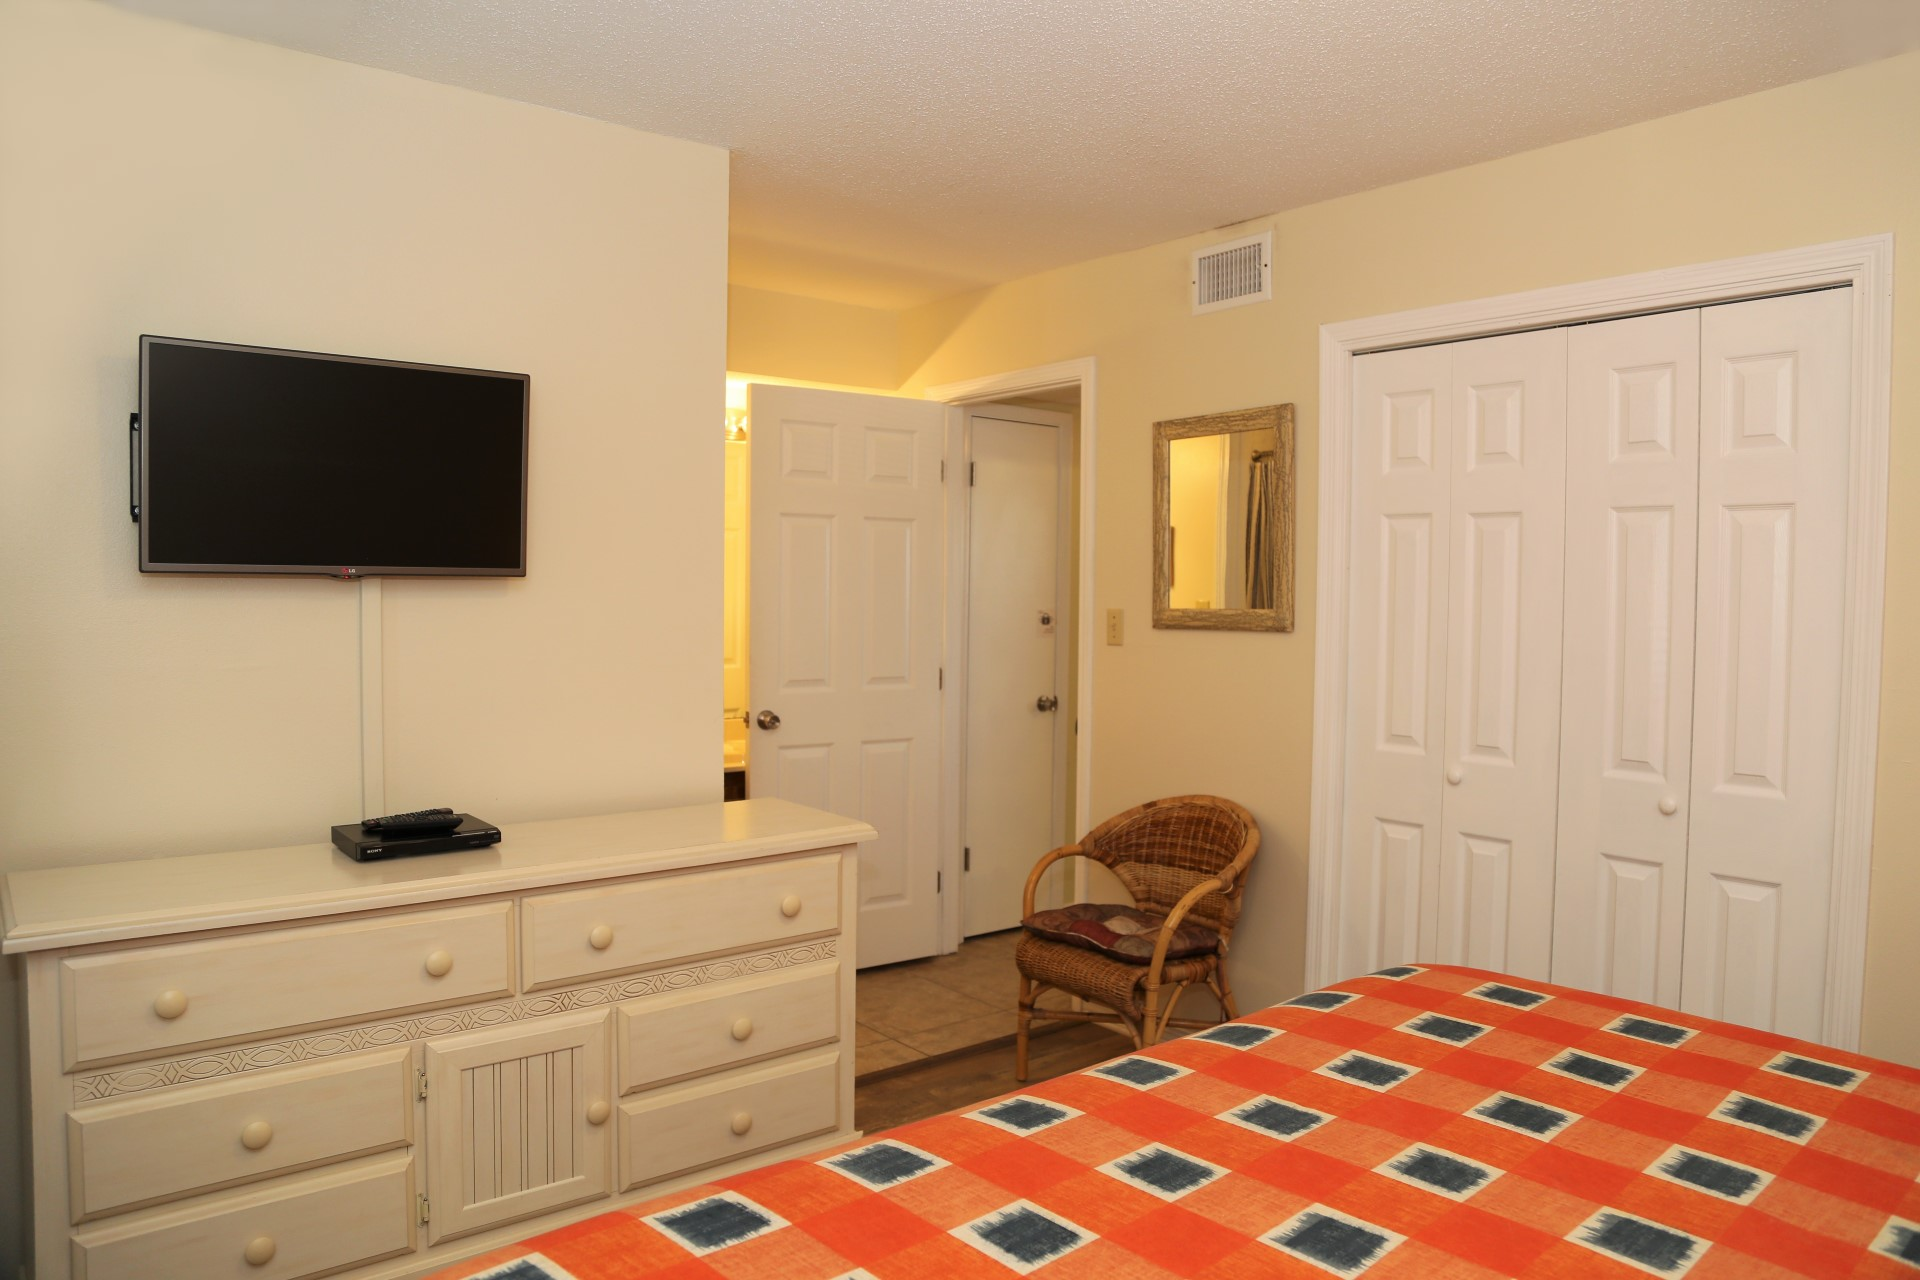 The master bedroom includes a dresser and closet for extra s